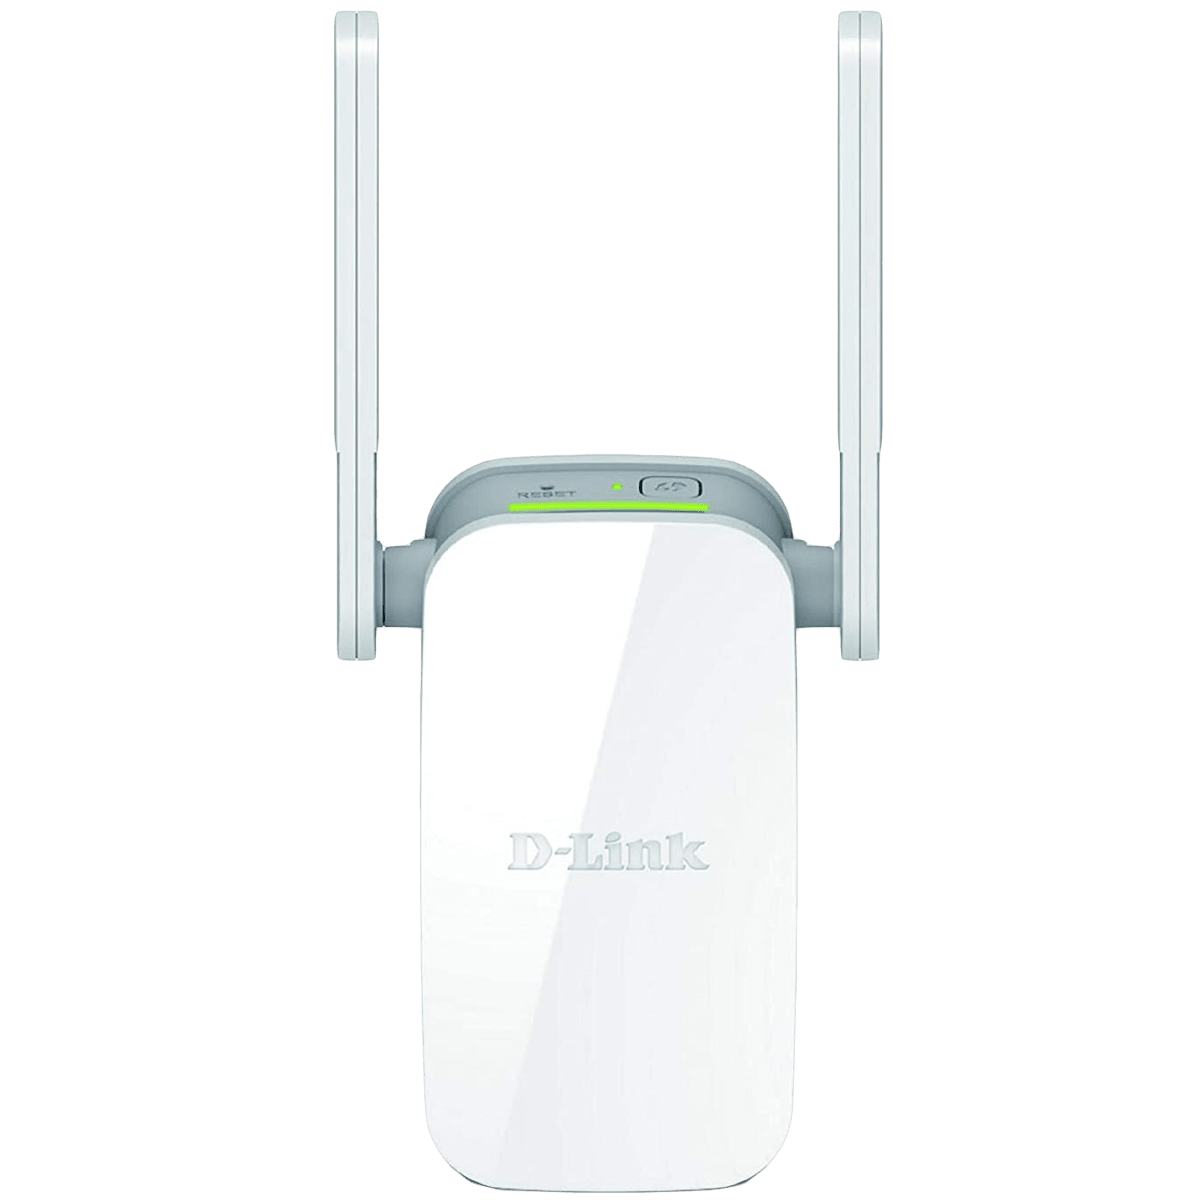 D-Link Dual Band WiFi Range Extender (Full Backwards Compatibility, DAP-1610 AC1200, White)